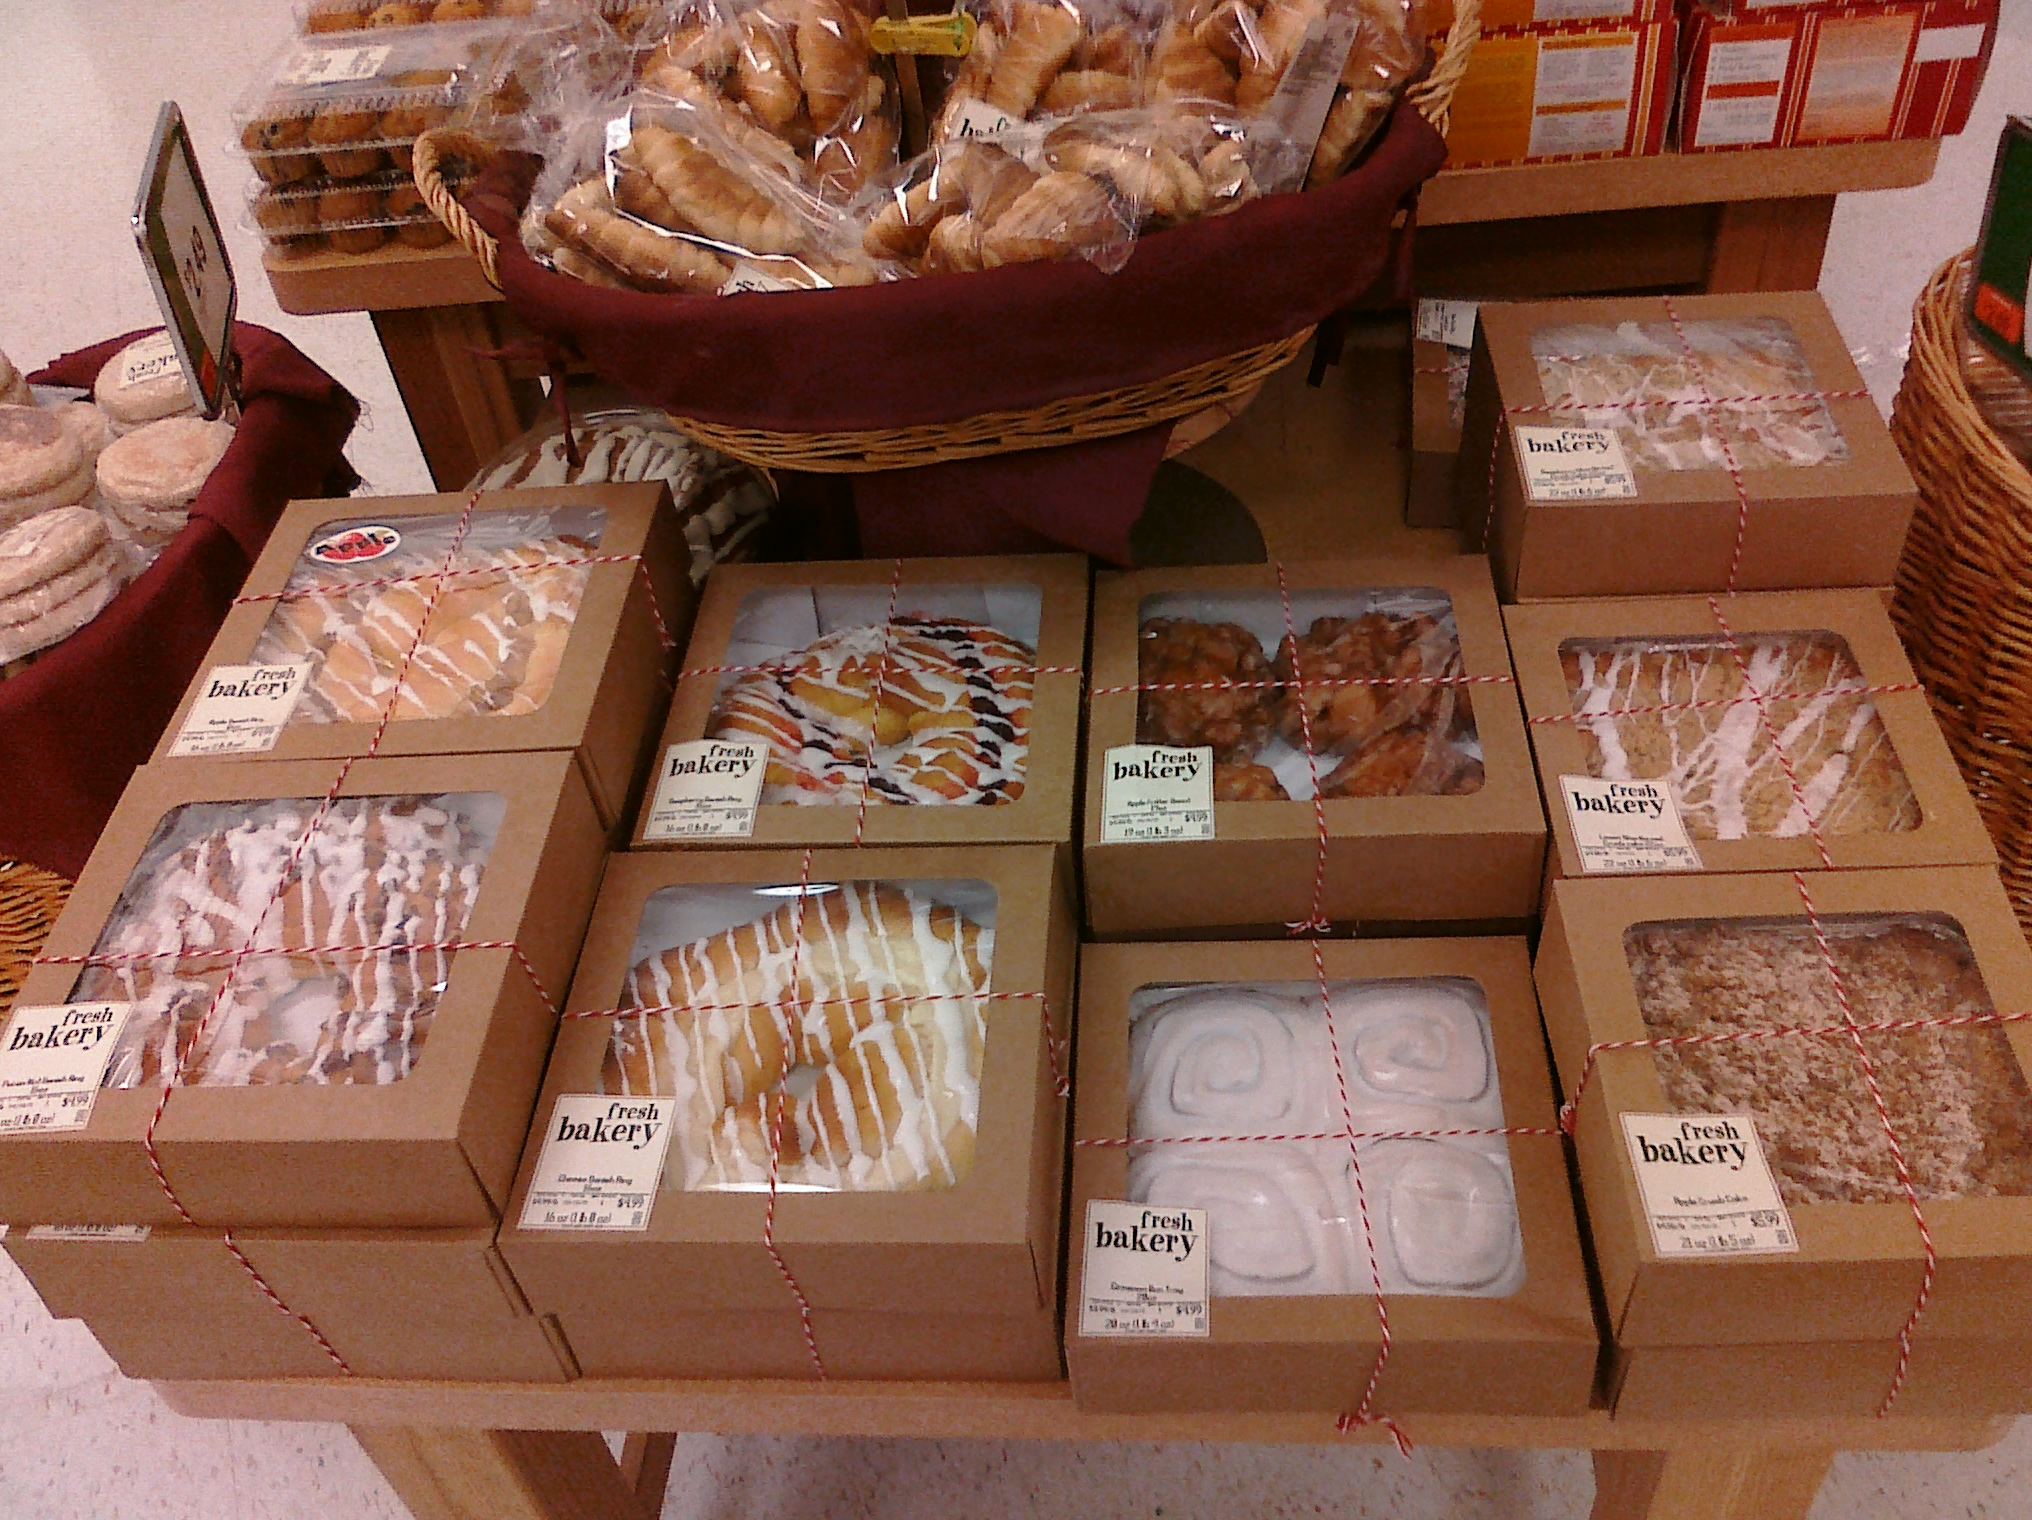 Stop And Shop Bakery Products Pictures And Order Information